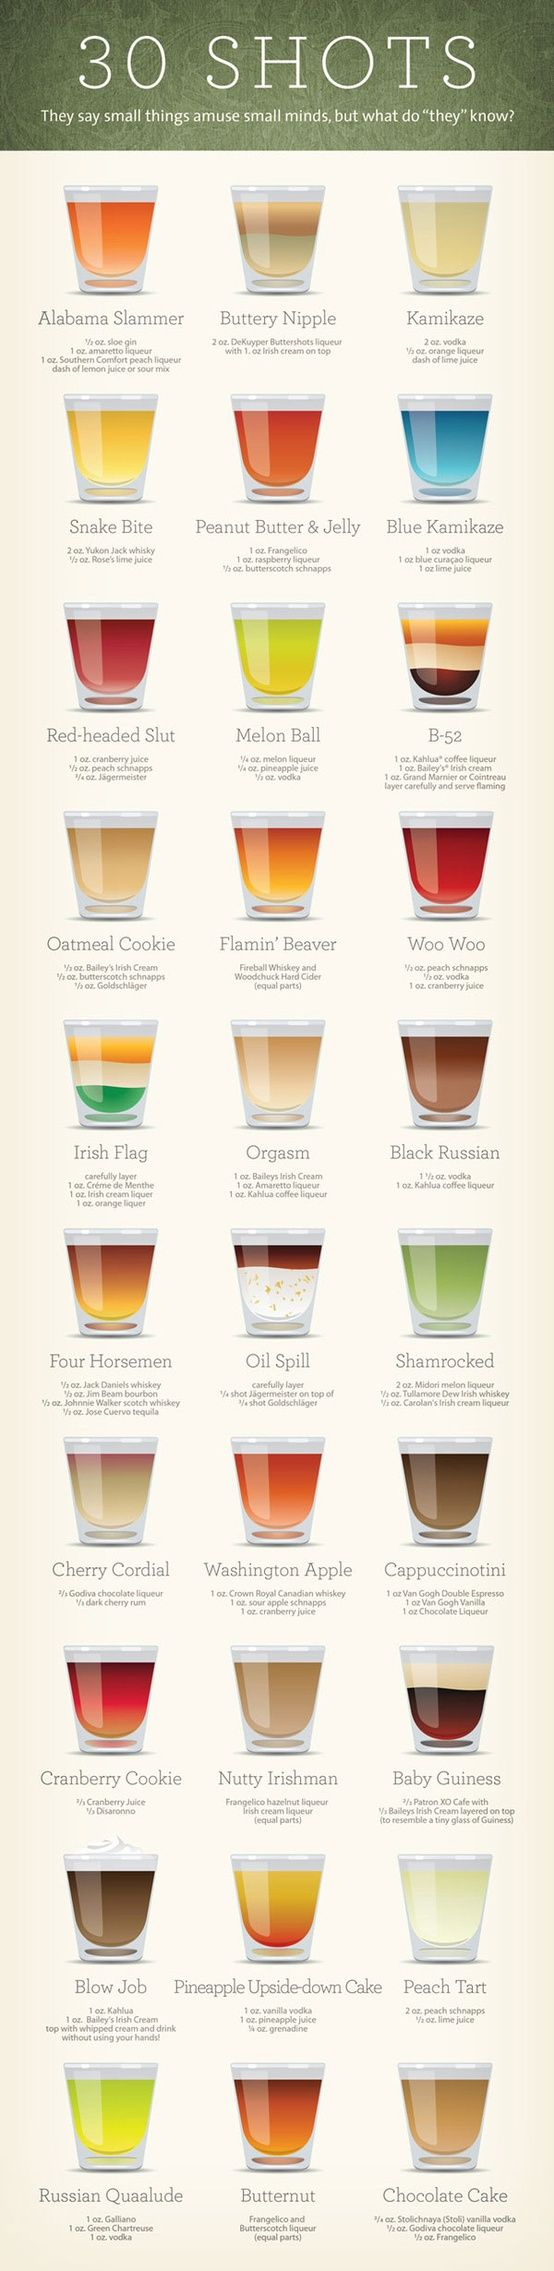 how to make 30 cocktails/shots